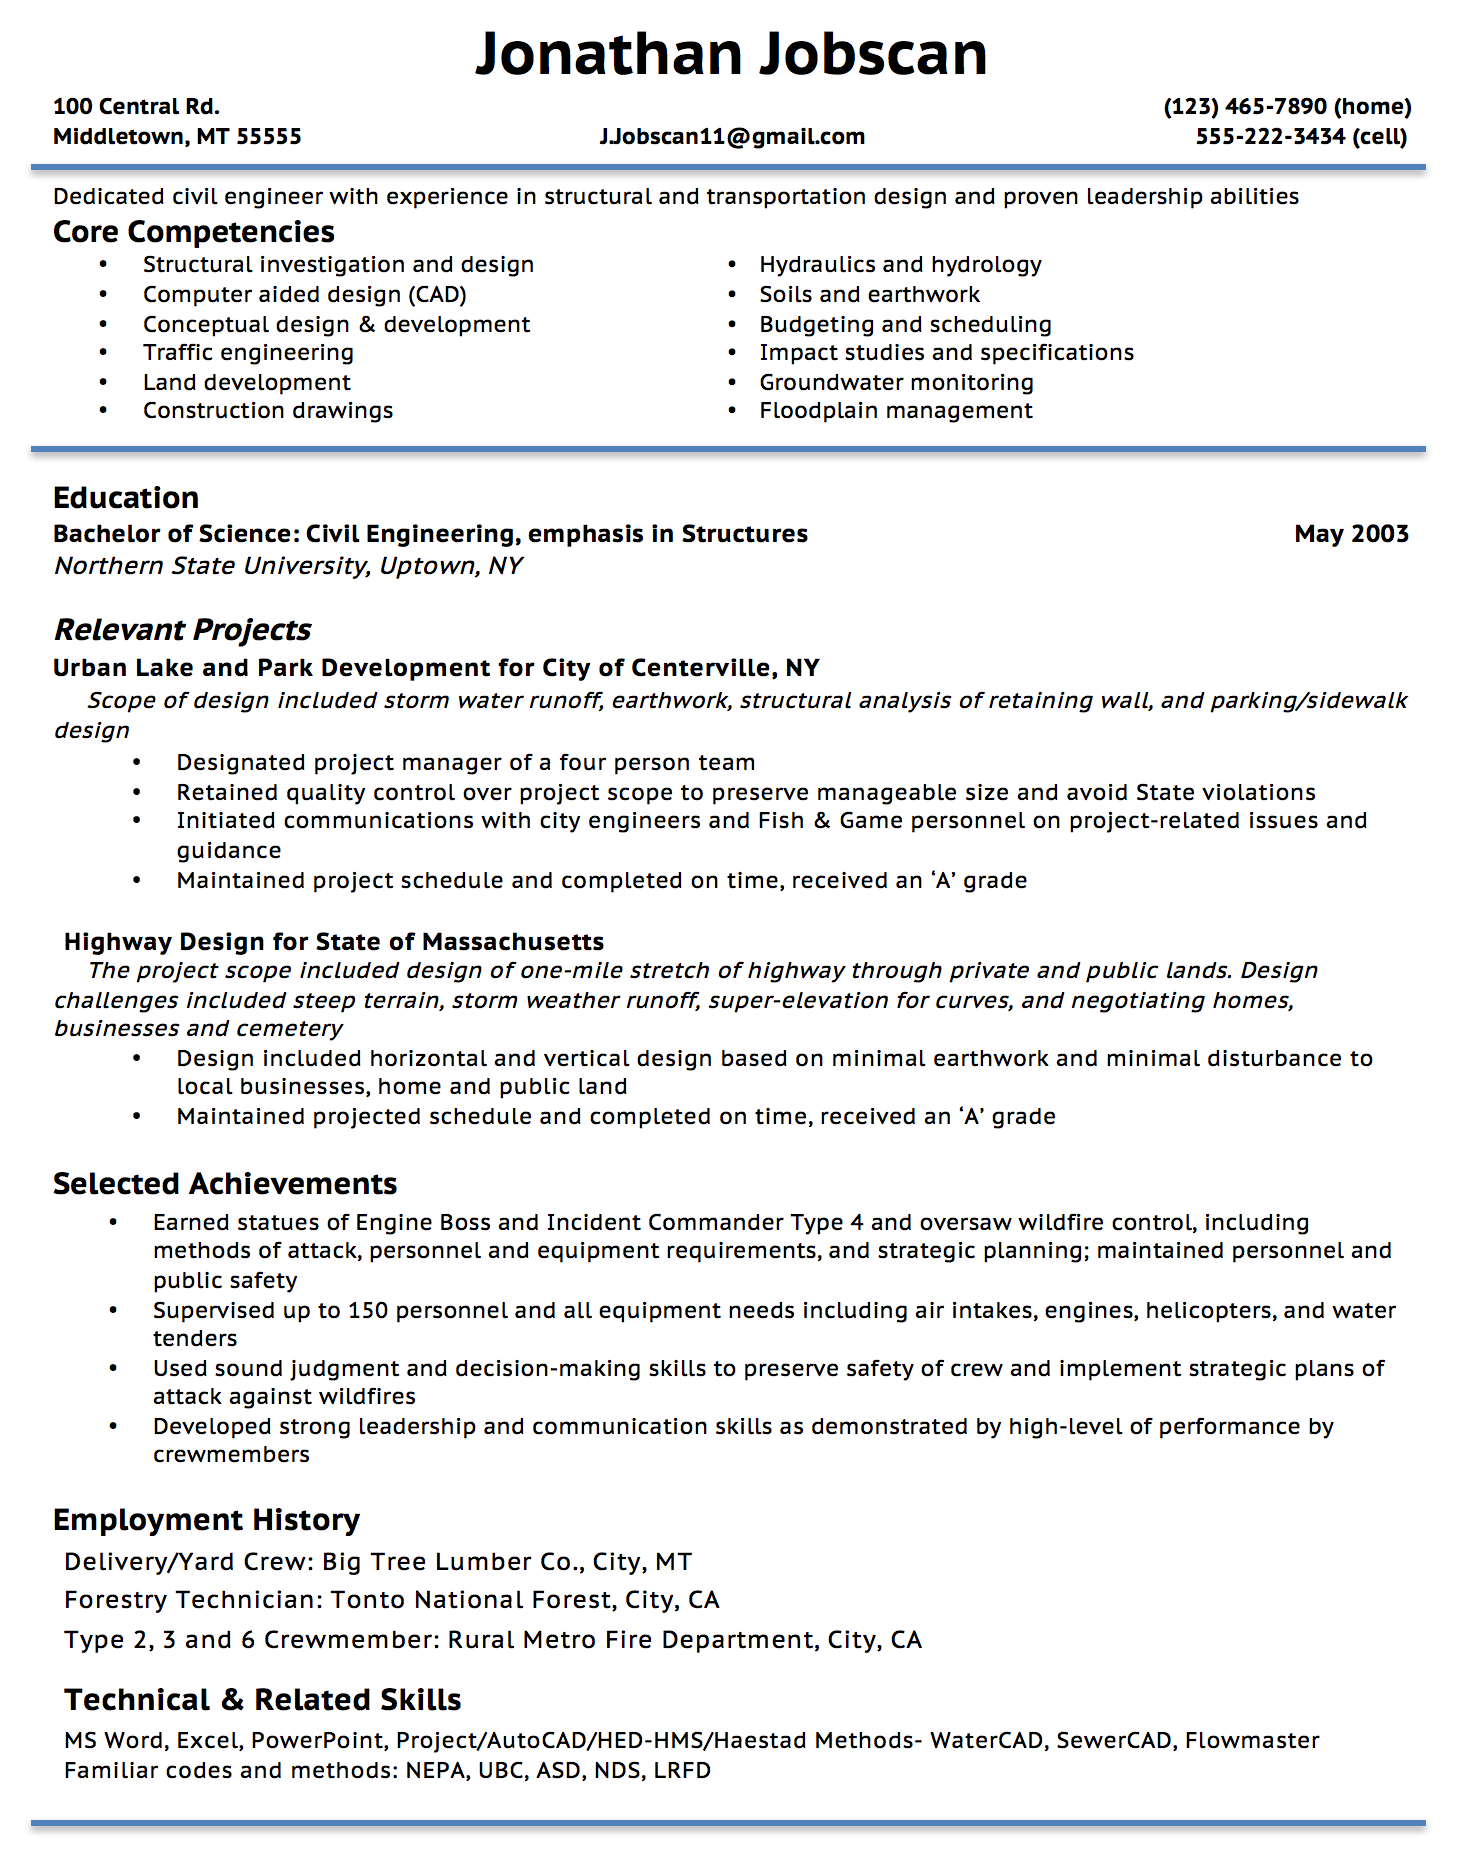 Opposenewapstandardsus  Pleasant Resume Writing Guide  Jobscan With Interesting Example Of A Functional Resume Format With Divine Customer Service Supervisor Resume Also Resume Place In Addition Cover Letter And Resume Template And Artistic Resume As Well As Example Of Objective For Resume Additionally Adjunct Professor Resume From Jobscanco With Opposenewapstandardsus  Interesting Resume Writing Guide  Jobscan With Divine Example Of A Functional Resume Format And Pleasant Customer Service Supervisor Resume Also Resume Place In Addition Cover Letter And Resume Template From Jobscanco